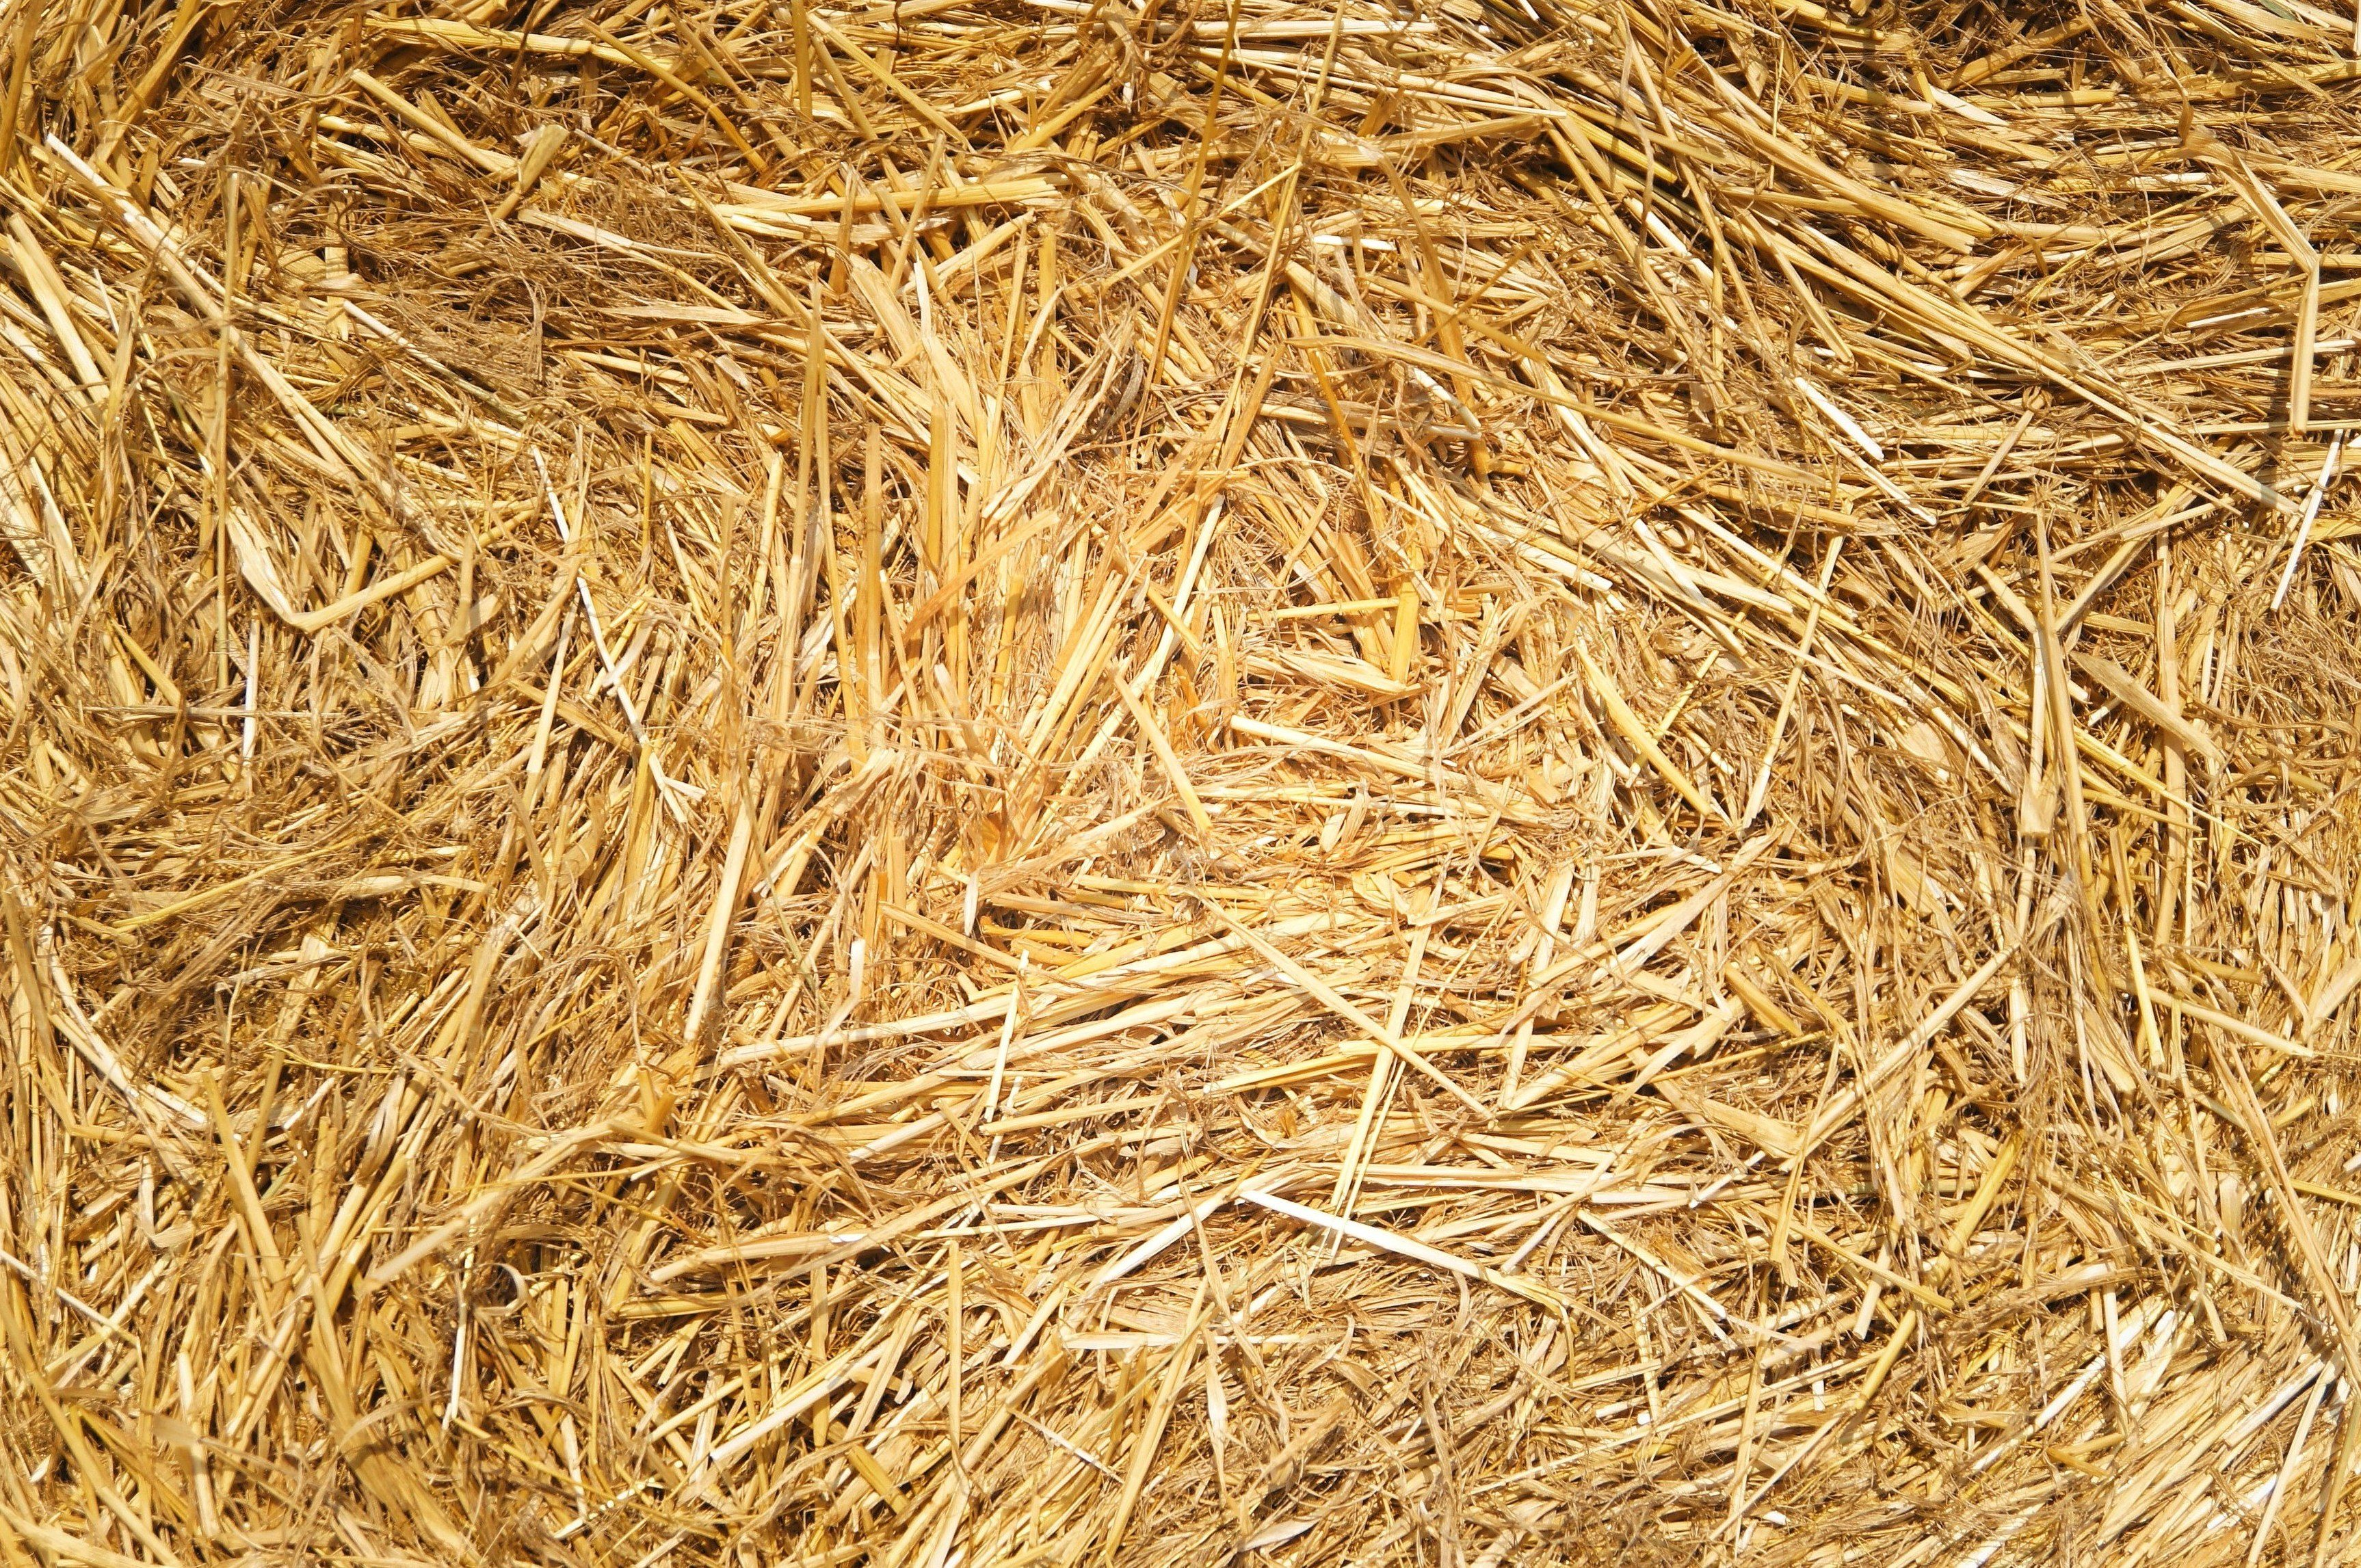 Free picture: wheat, hay, dried grass, grass, summer